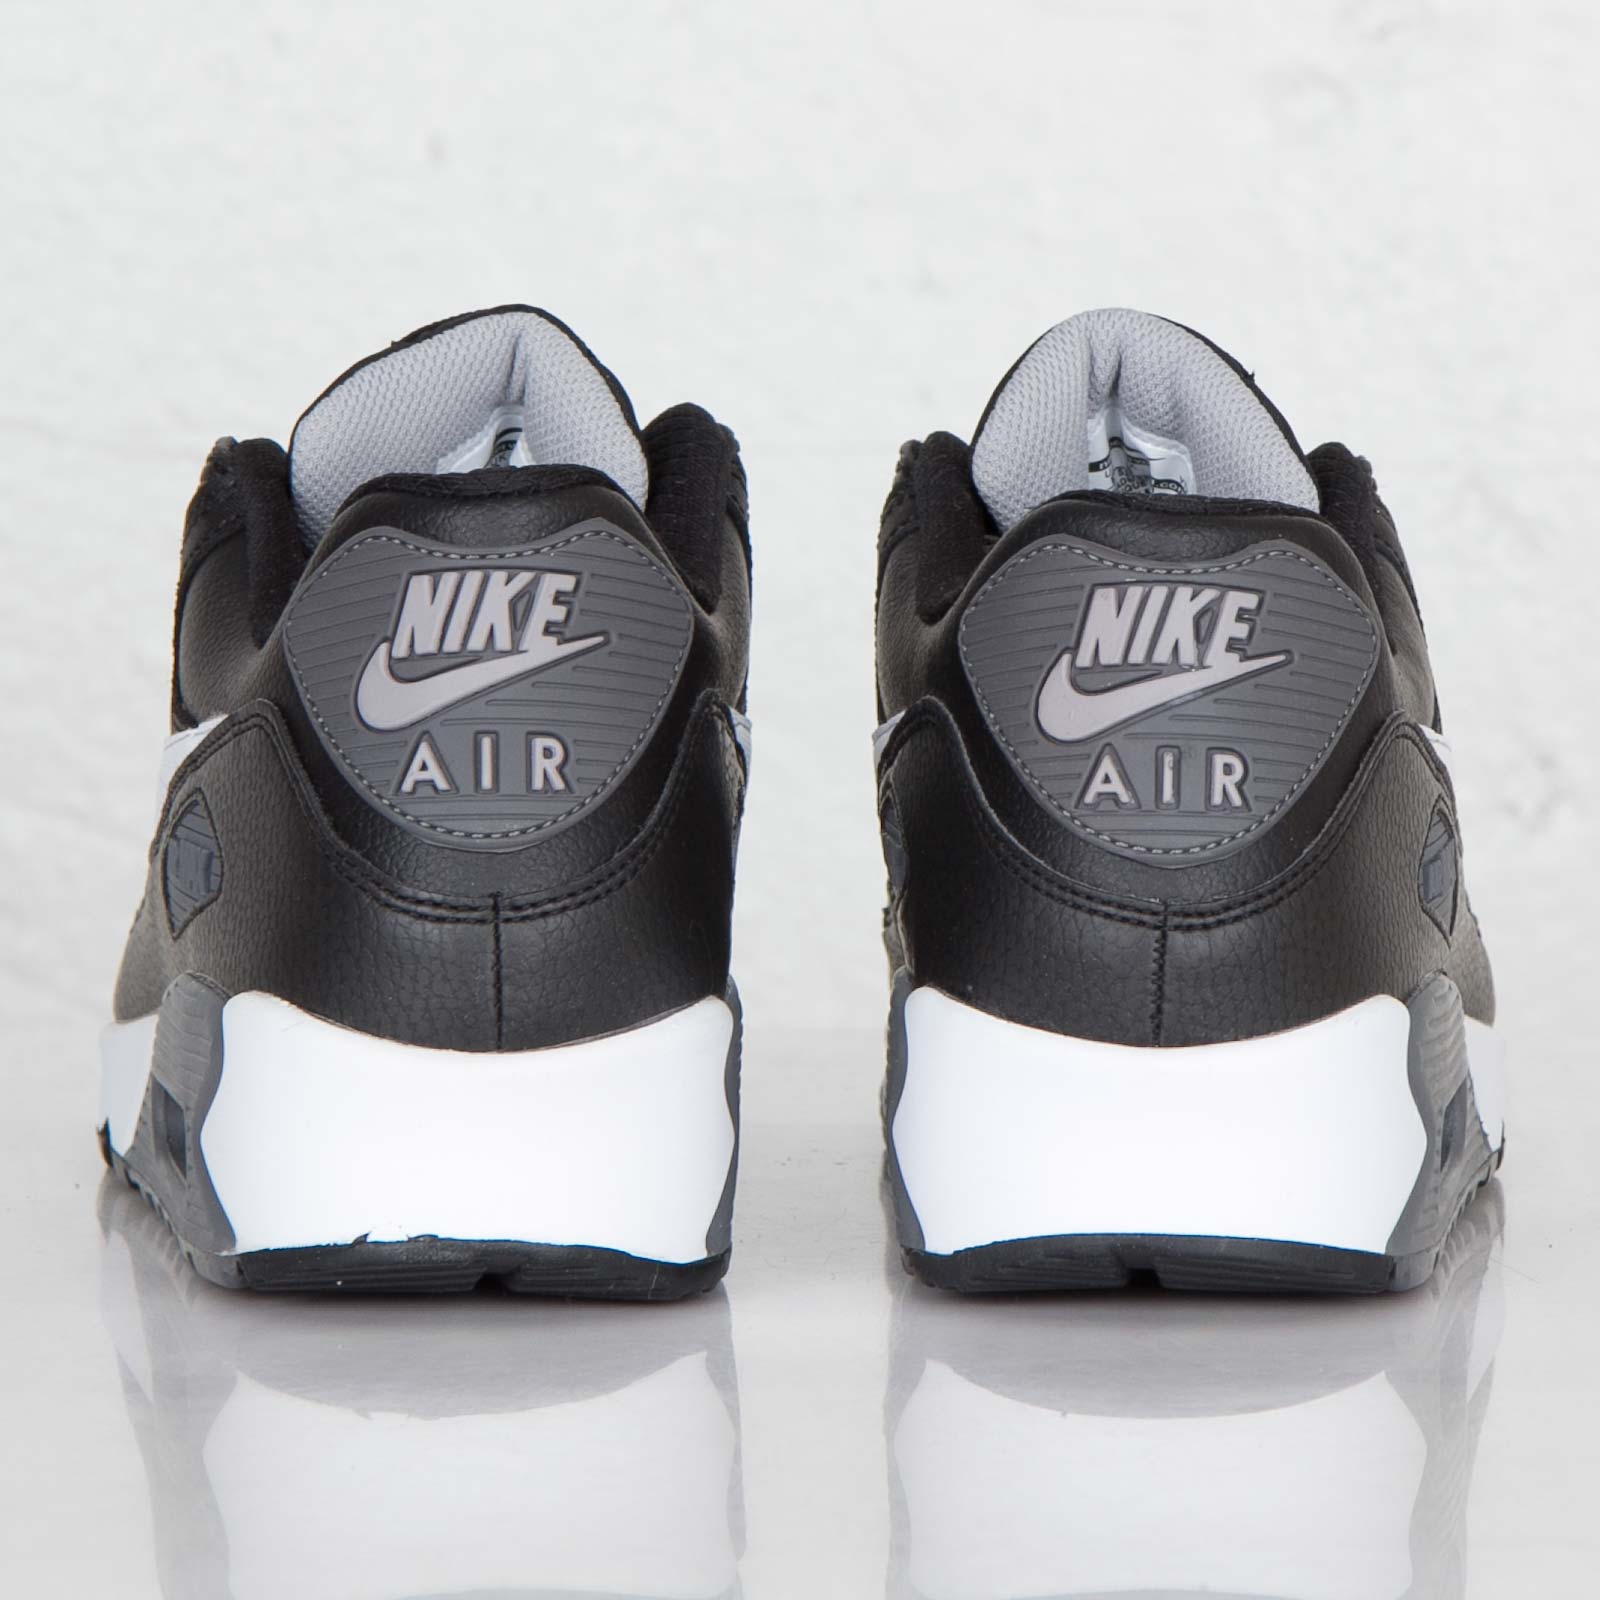 newest a99b3 95e4e Nike Air Max 90 Essential - 537384-012 - Sneakersnstuff   sneakers    streetwear online since 1999